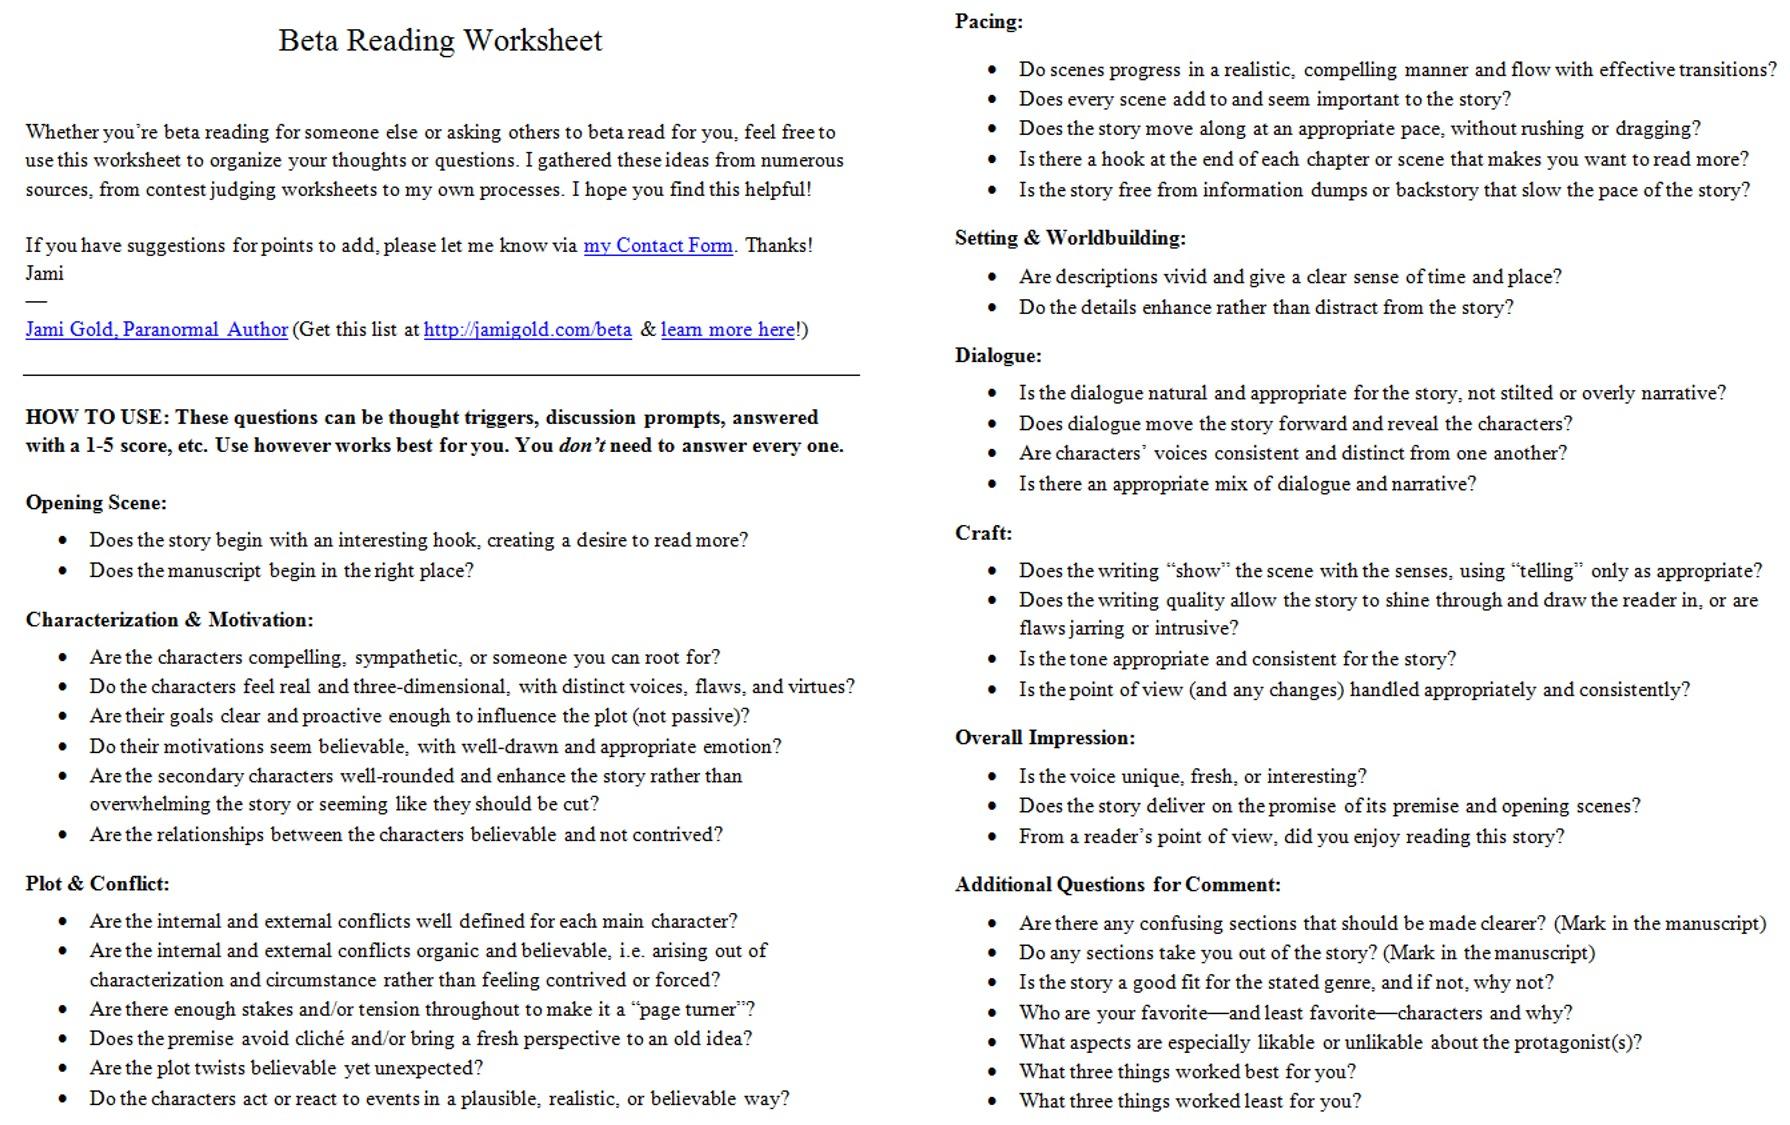 Proatmealus  Sweet Worksheets For Writers  Jami Gold Paranormal Author With Fetching Screen Shot Of The Twopage Beta Reading Worksheet With Divine Writing Numbers  Printable Worksheets Also Action Linking Verbs Worksheet In Addition Full Stops Worksheet And Midpoint Of A Line Worksheet As Well As Kinder Alphabet Worksheets Additionally Year  Division Worksheets From Jamigoldcom With Proatmealus  Fetching Worksheets For Writers  Jami Gold Paranormal Author With Divine Screen Shot Of The Twopage Beta Reading Worksheet And Sweet Writing Numbers  Printable Worksheets Also Action Linking Verbs Worksheet In Addition Full Stops Worksheet From Jamigoldcom